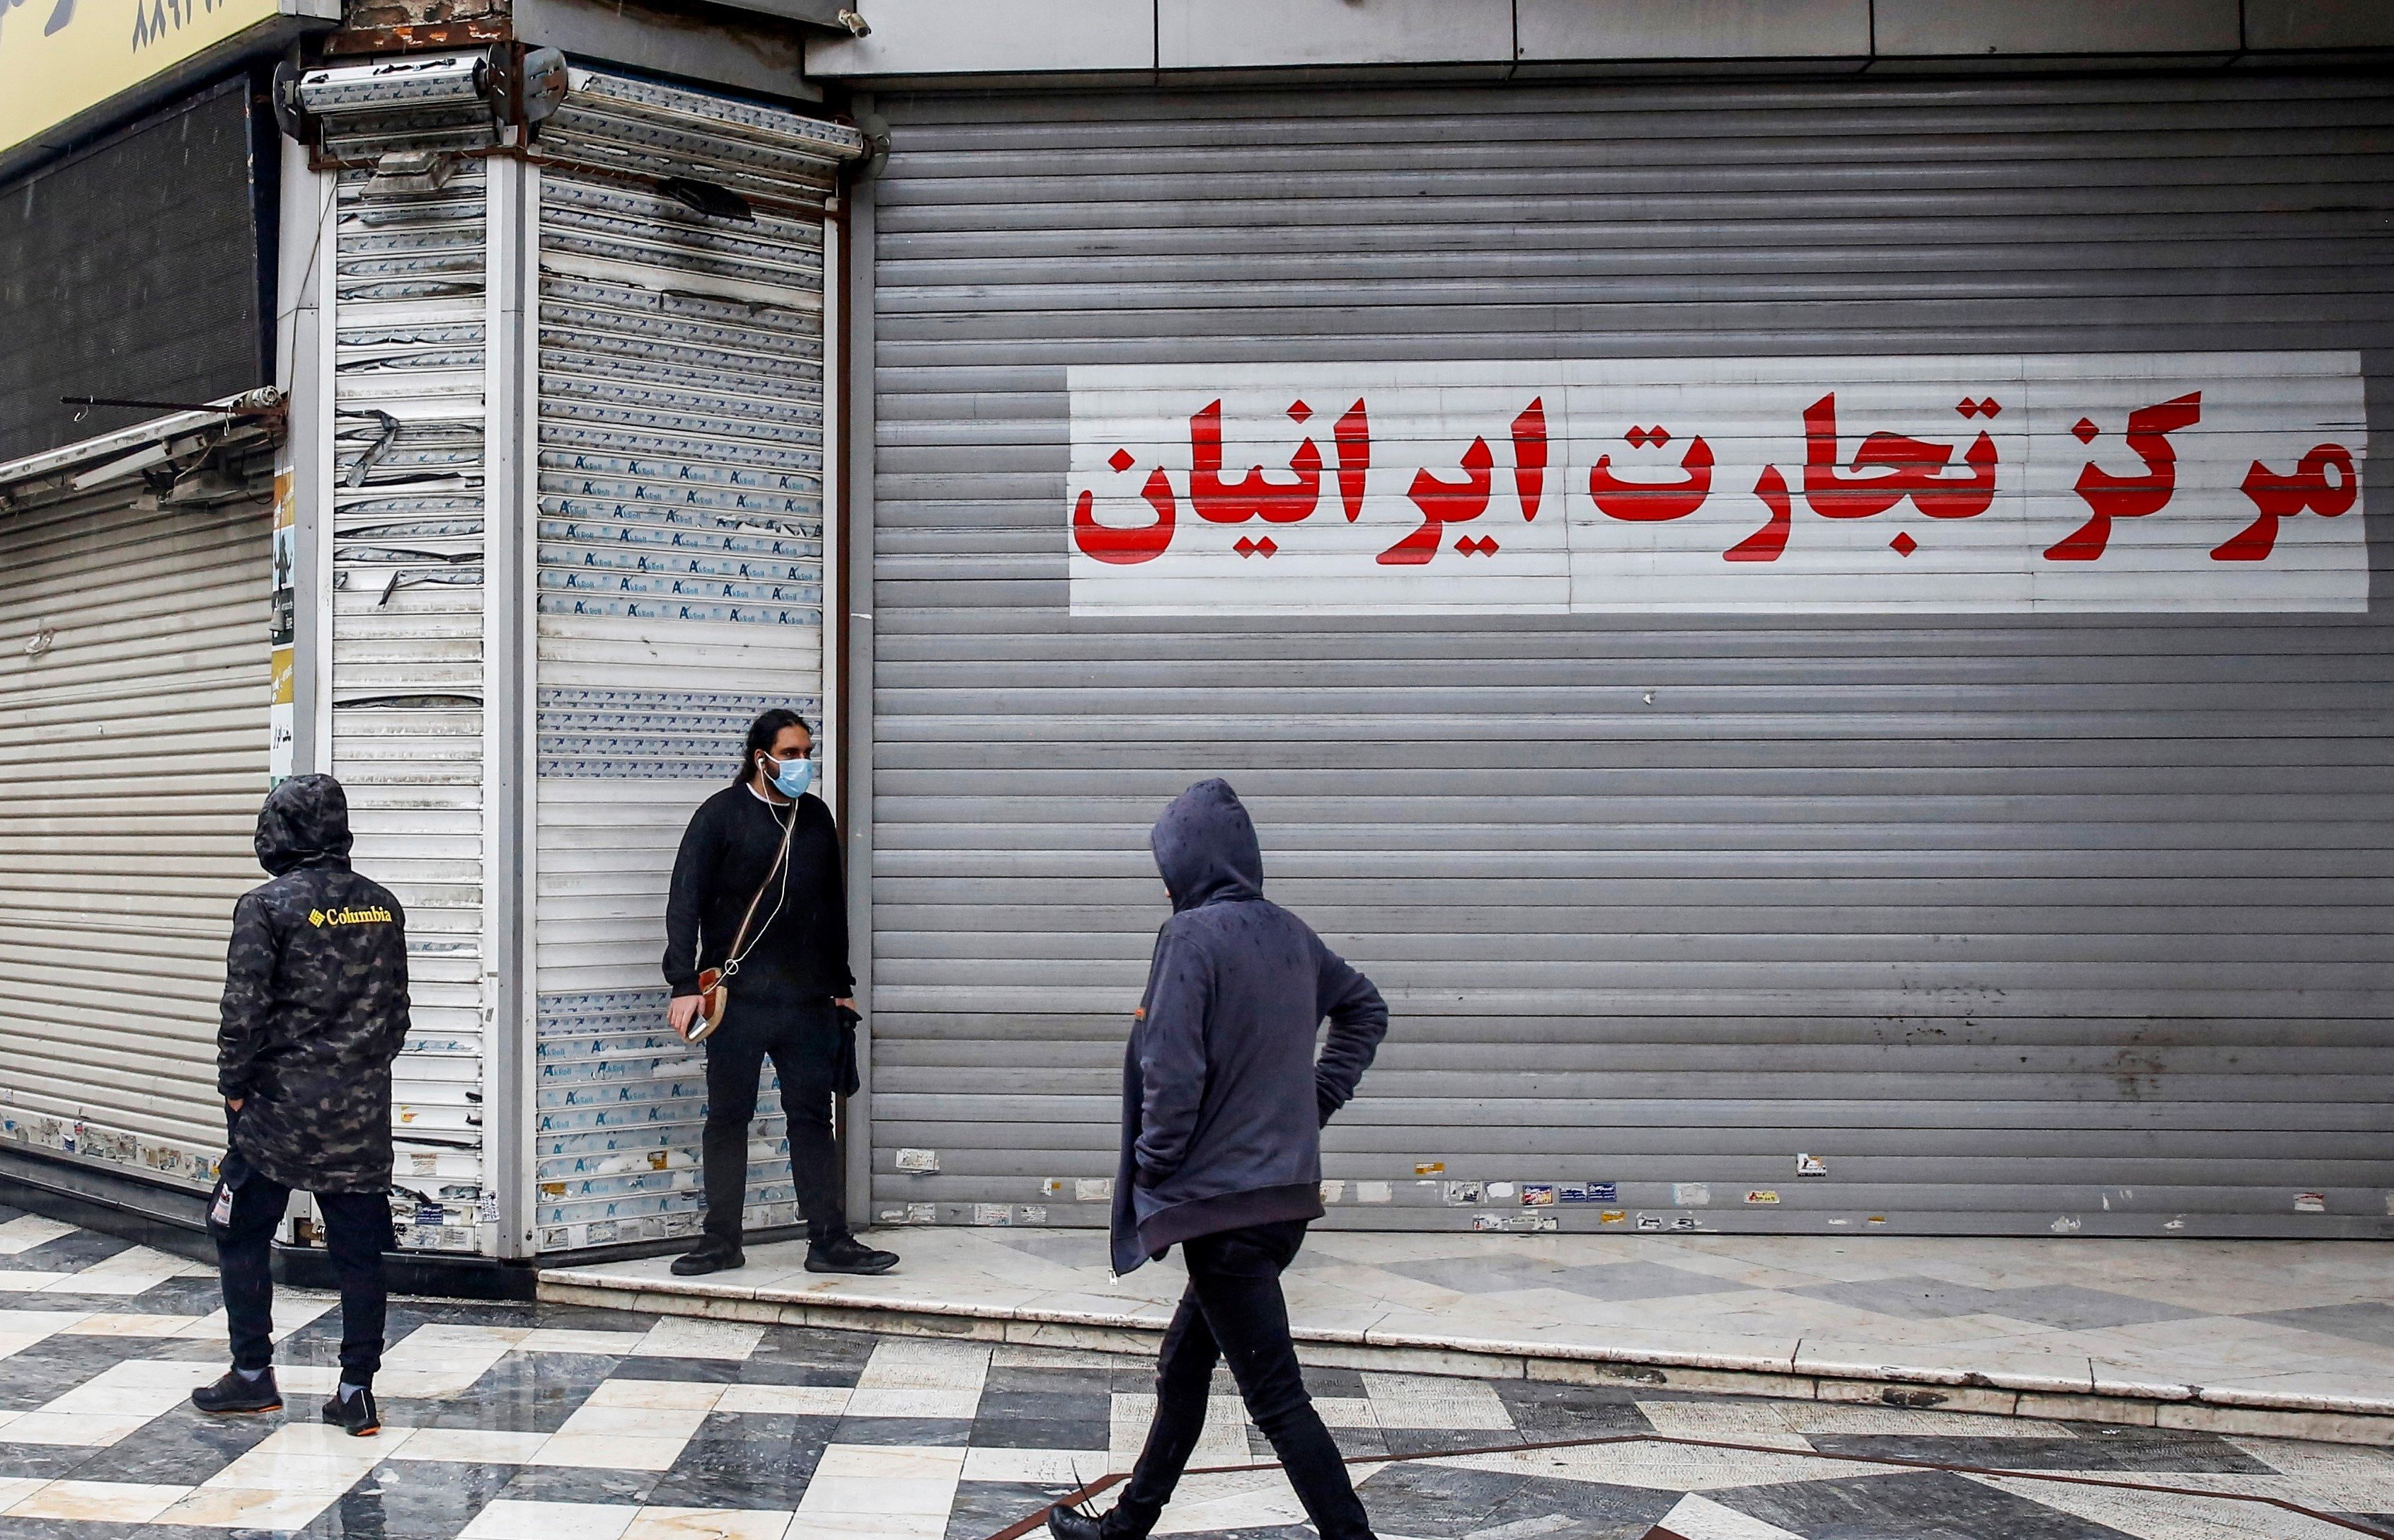 Pedestrians, mask-clad due to the COVID-19 coronavirus pandemic, walk past closed shops along a street in Iran's capital Tehran on November 21, 2020,